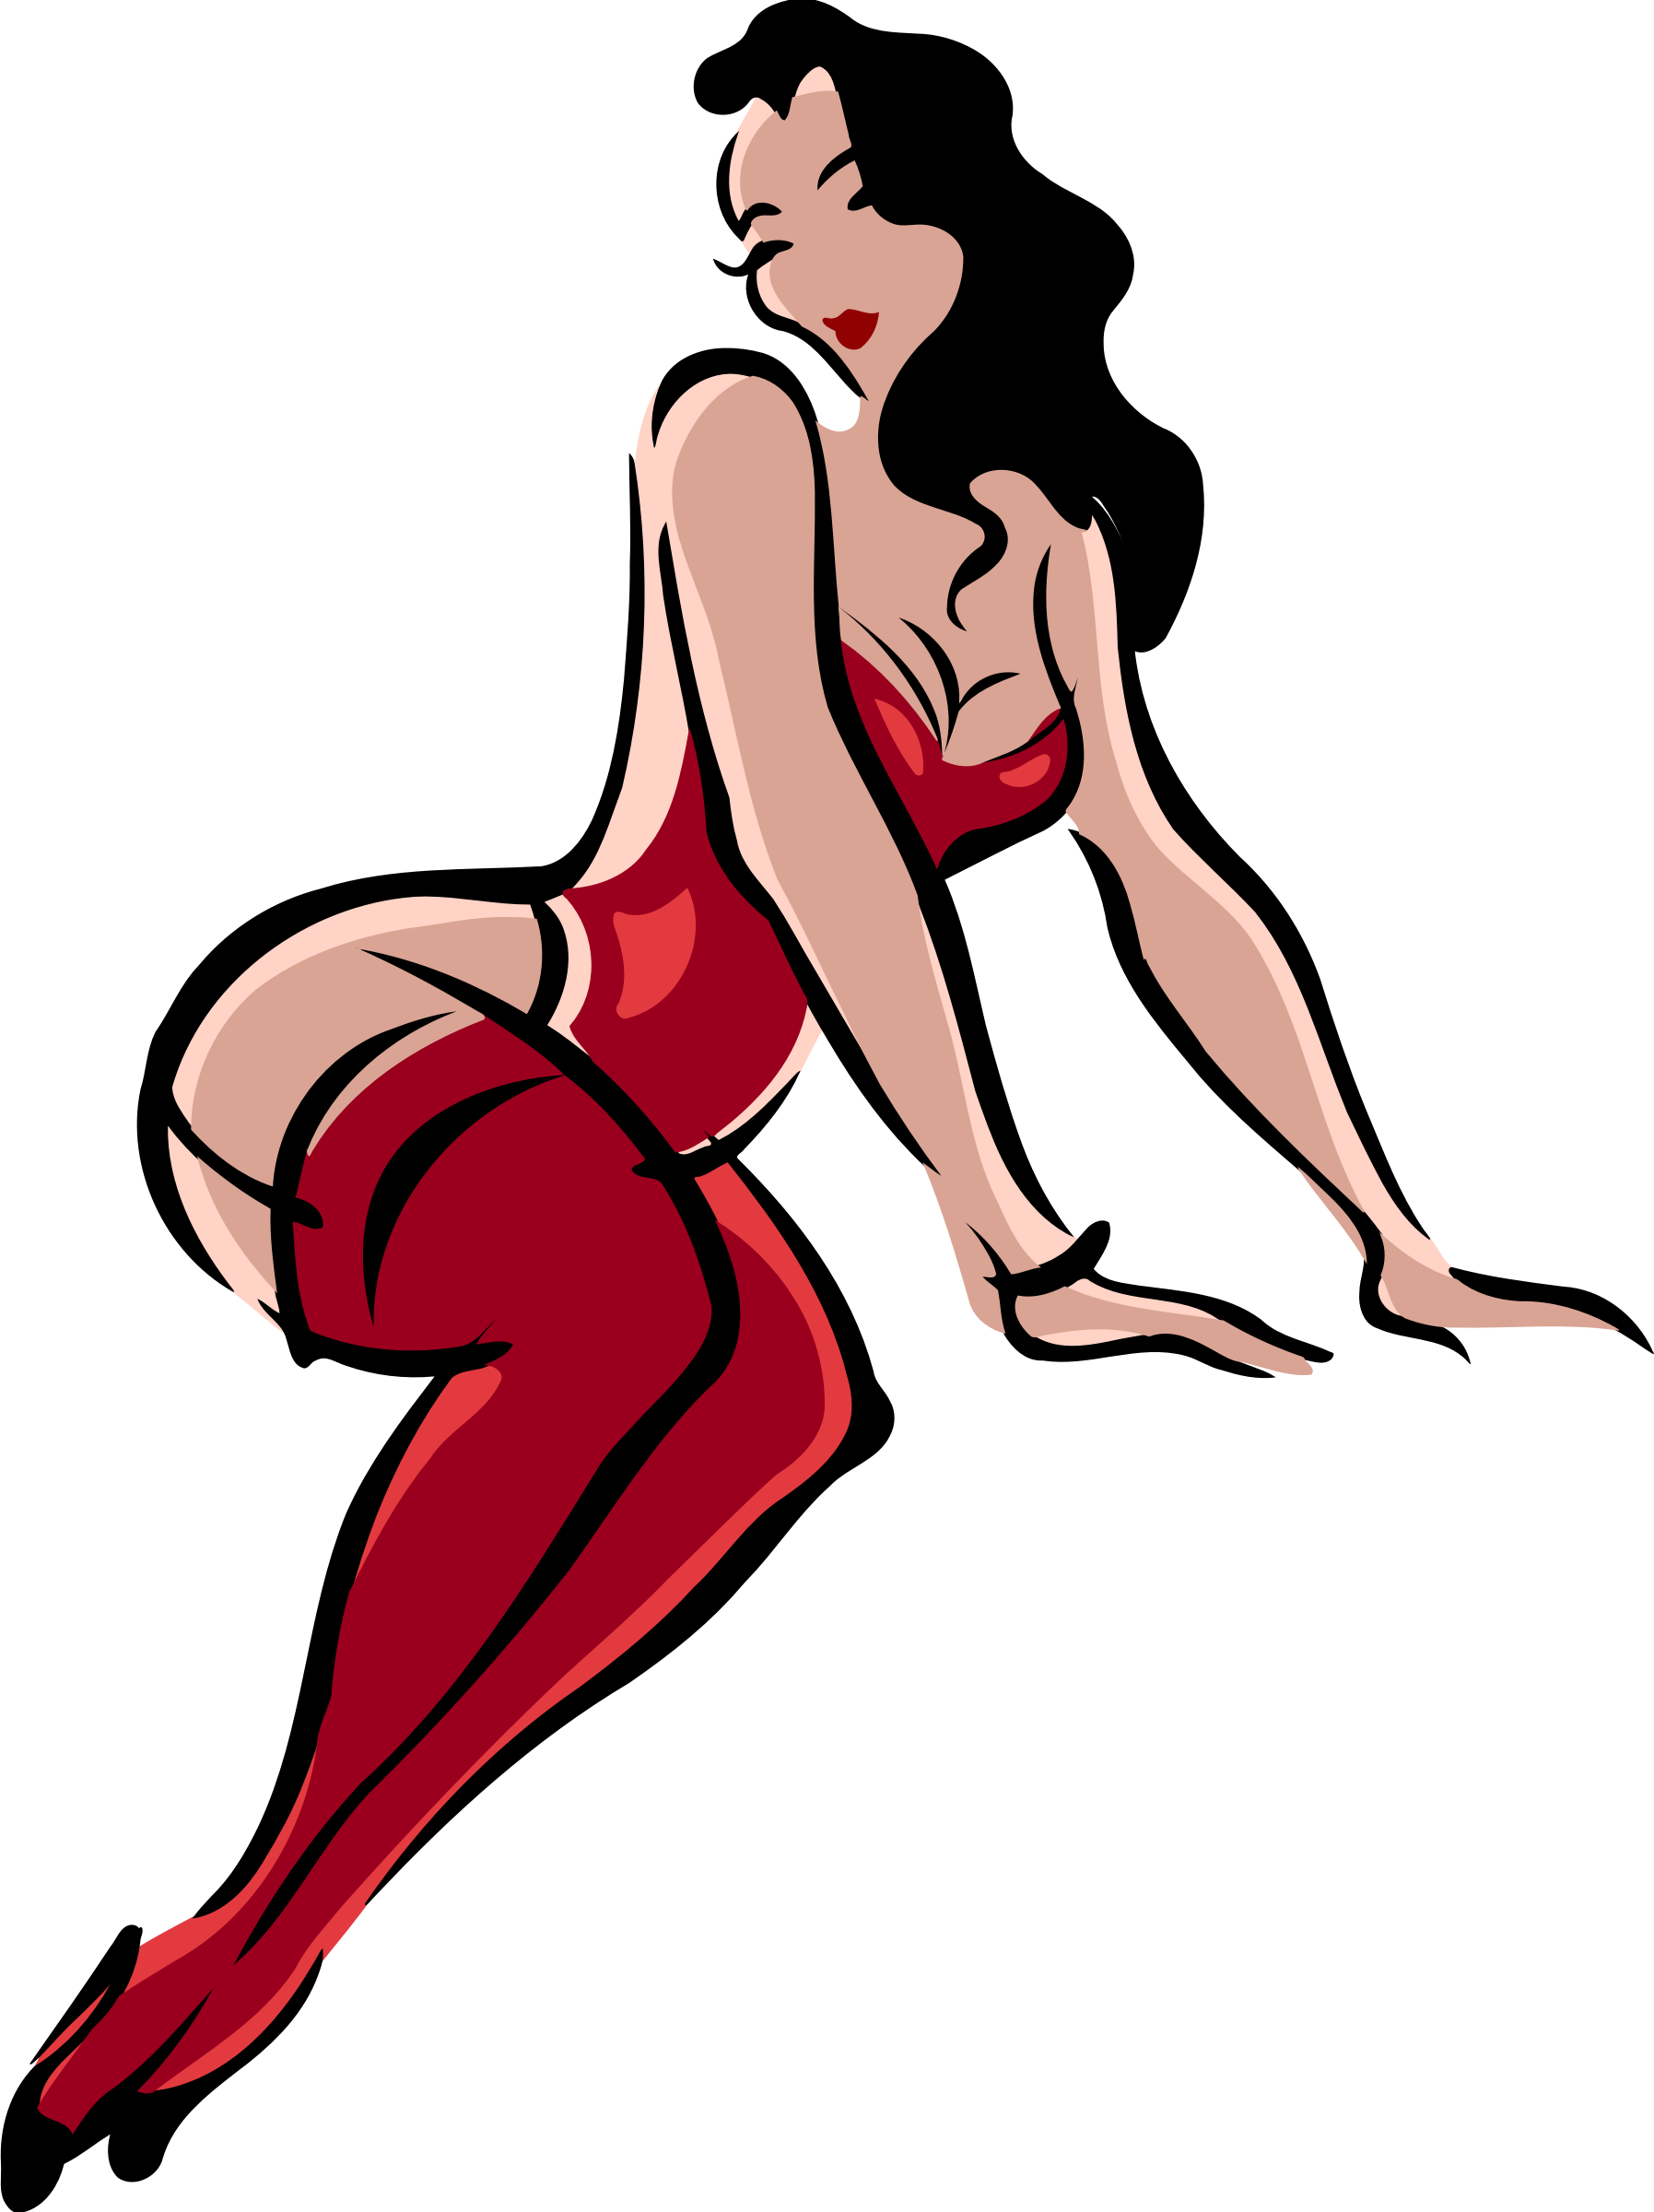 Lingerie model, light skin, black hair, red clothes by Firkin